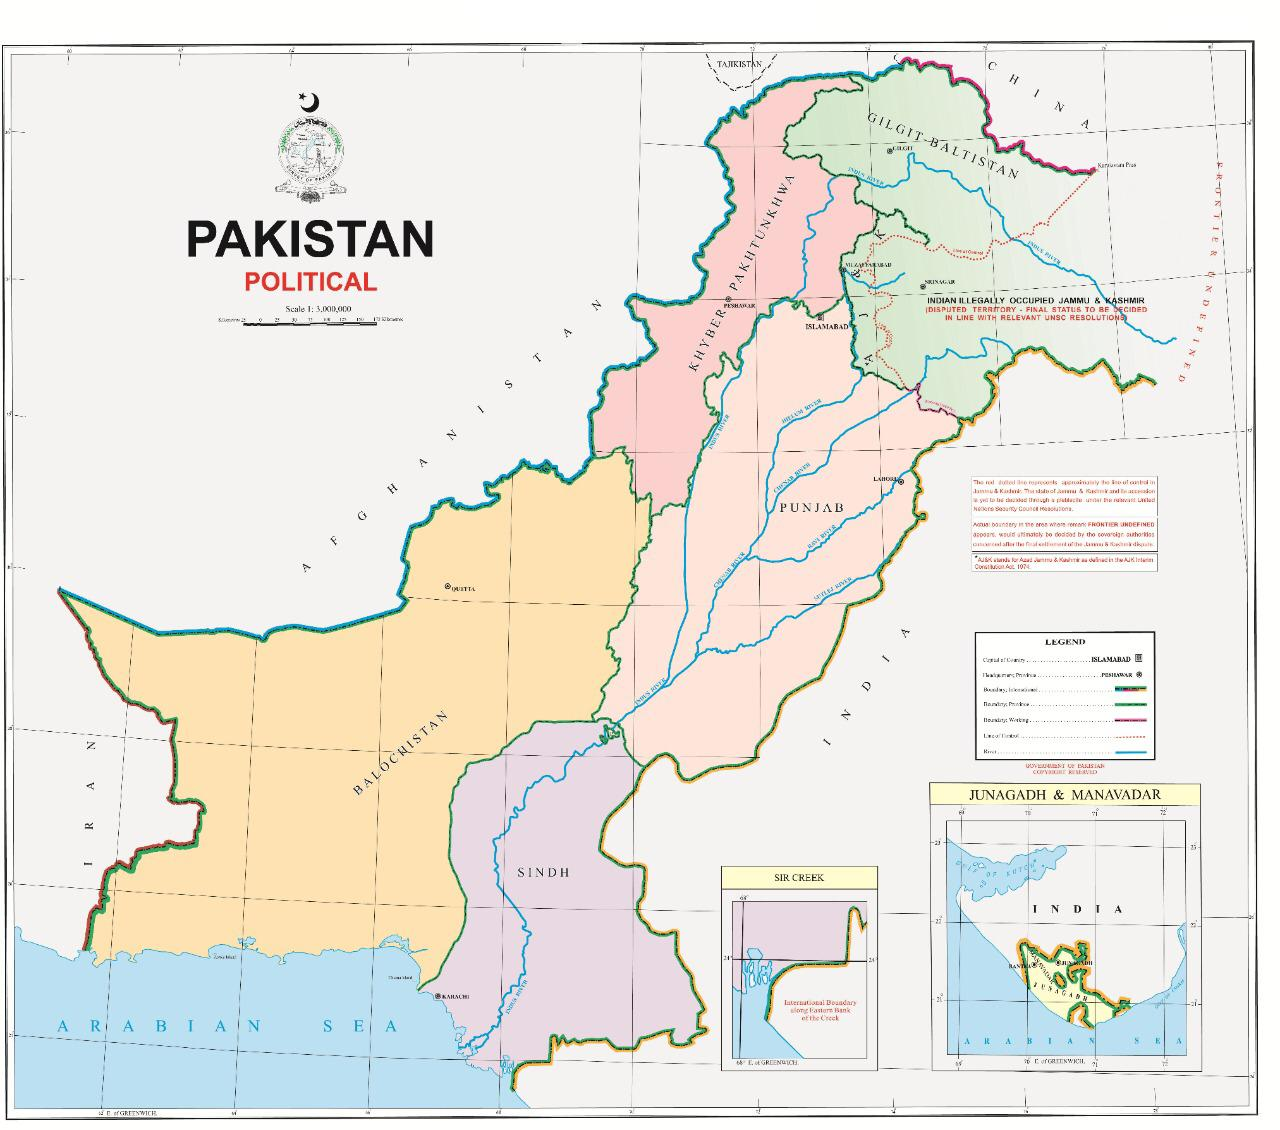 Pakistans new Kashmir map links it to China, fuelling Indias fears of war with both-ceb934e1-ff2f-4f06-abfe-4305ba9a351f-jpeg